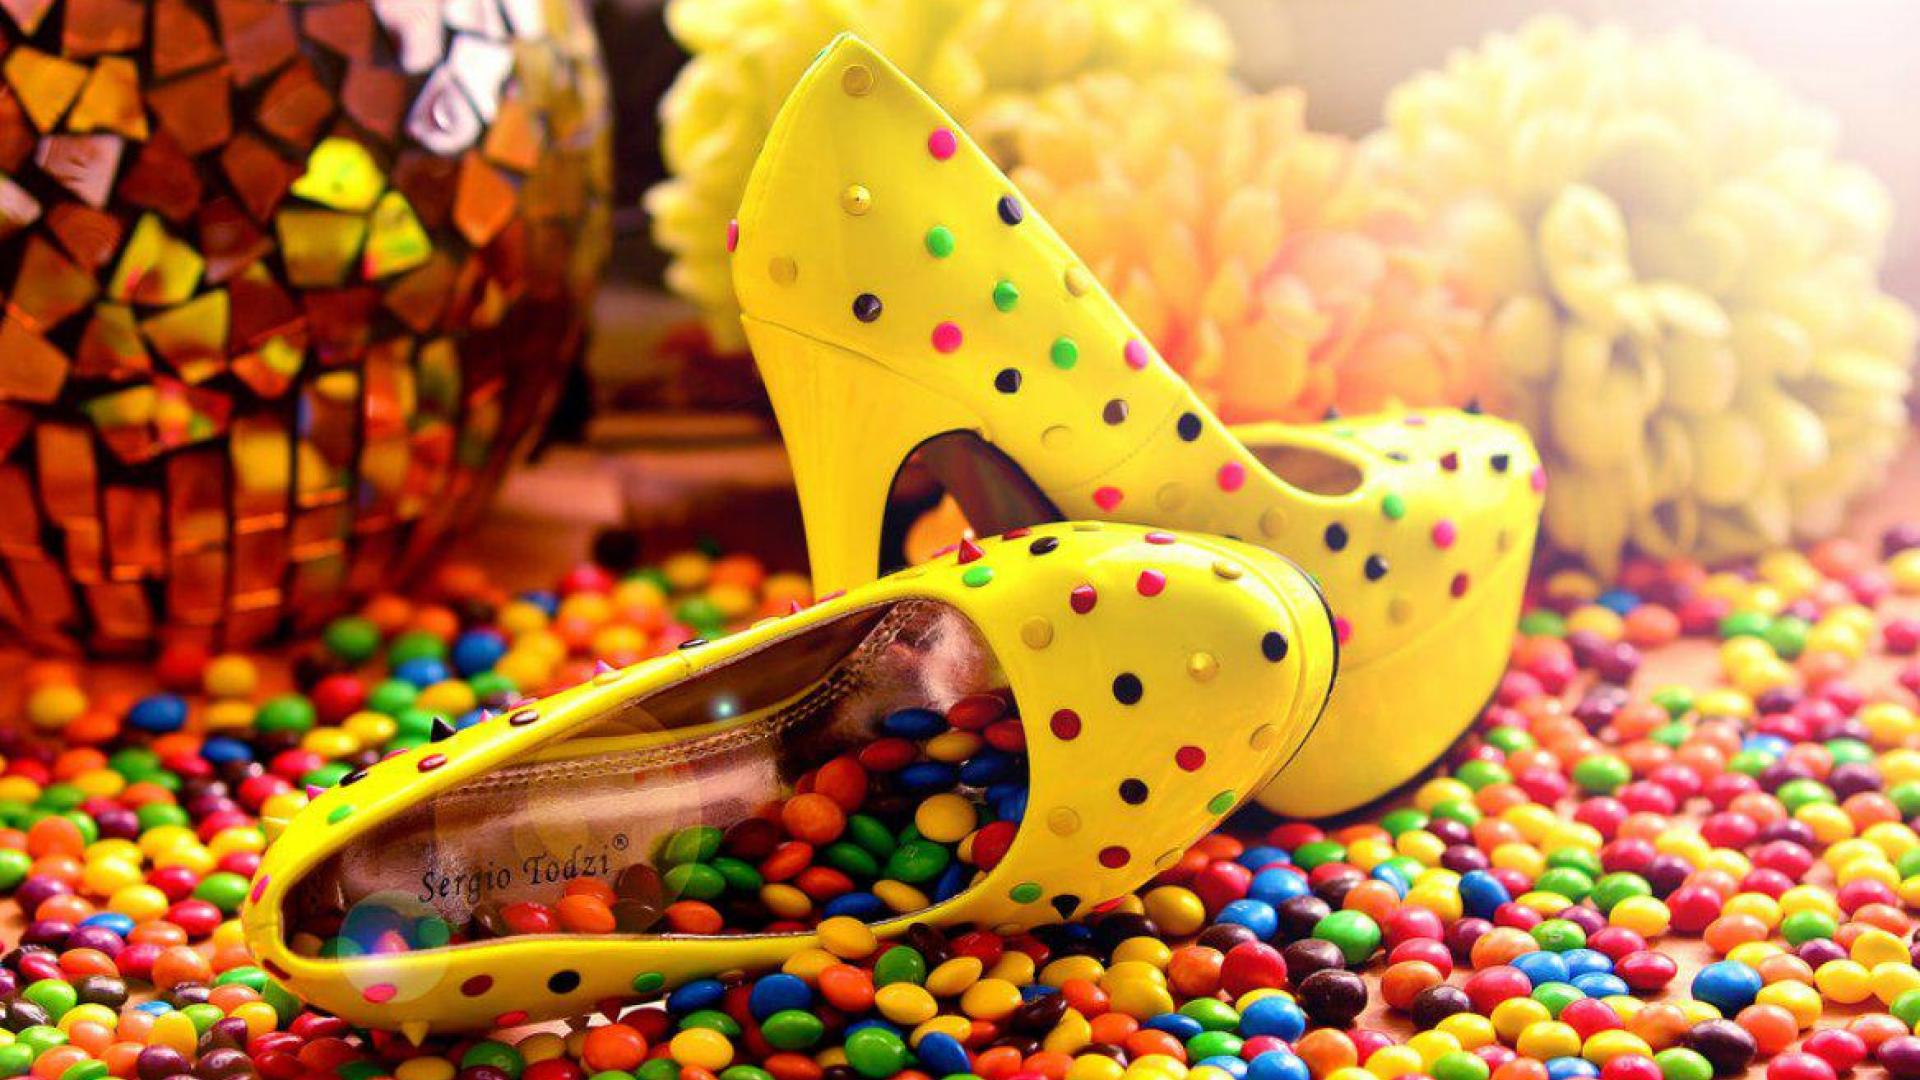 Colorful Candy Wallpapers   Top Colorful Candy Backgrounds 1920x1080